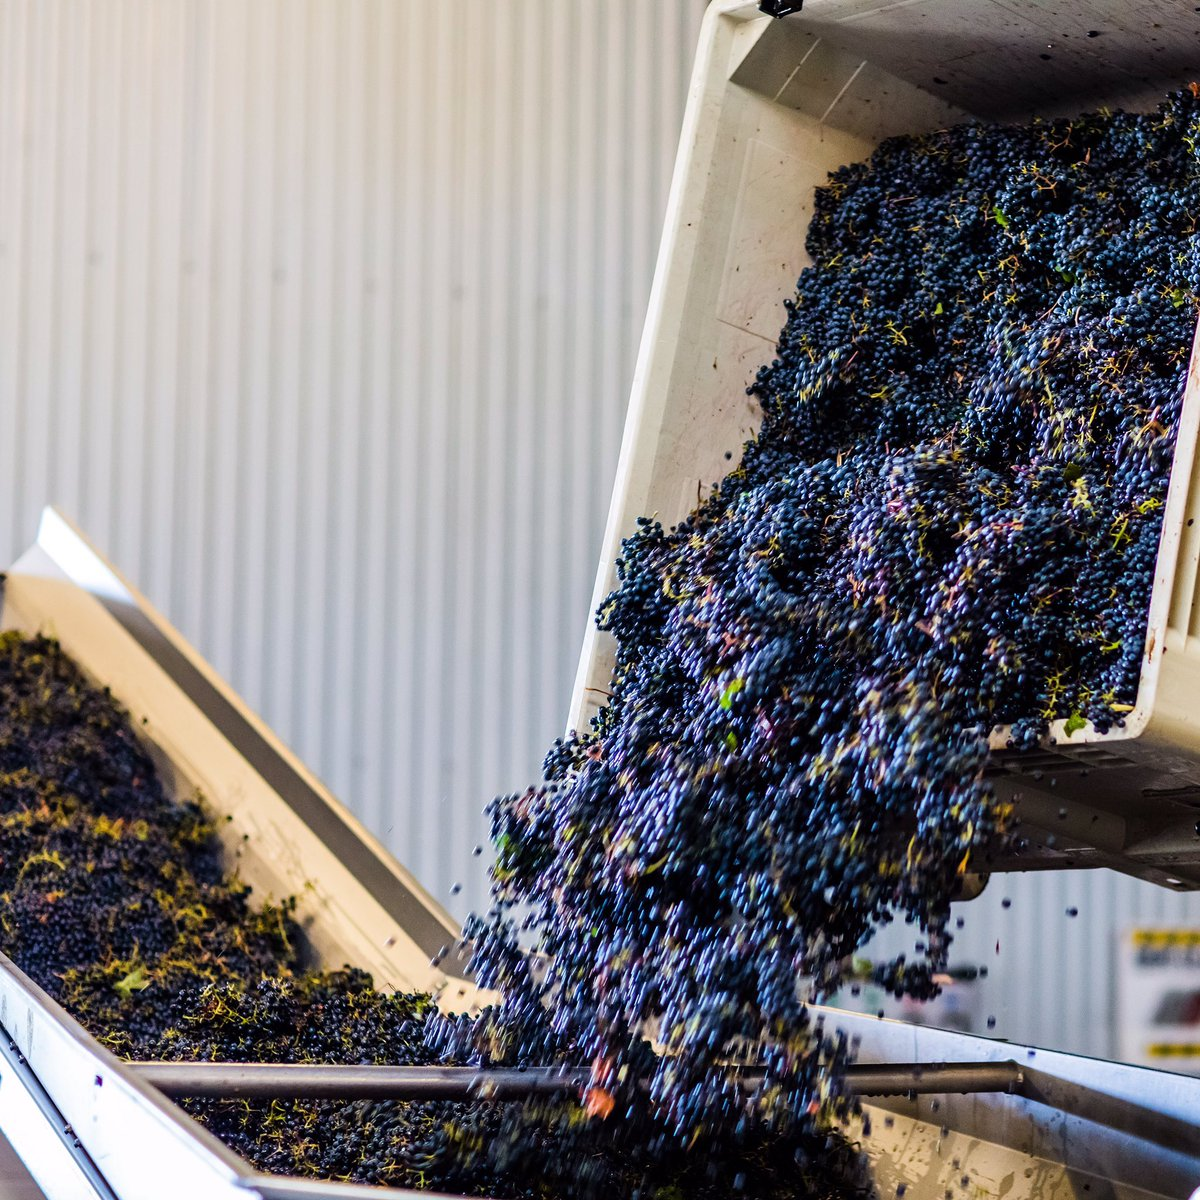 Still cool from the early-morning pick, these beautiful clusters are headed to the sorting table #lifeisacabernet https://t.co/9BwdPsXqom